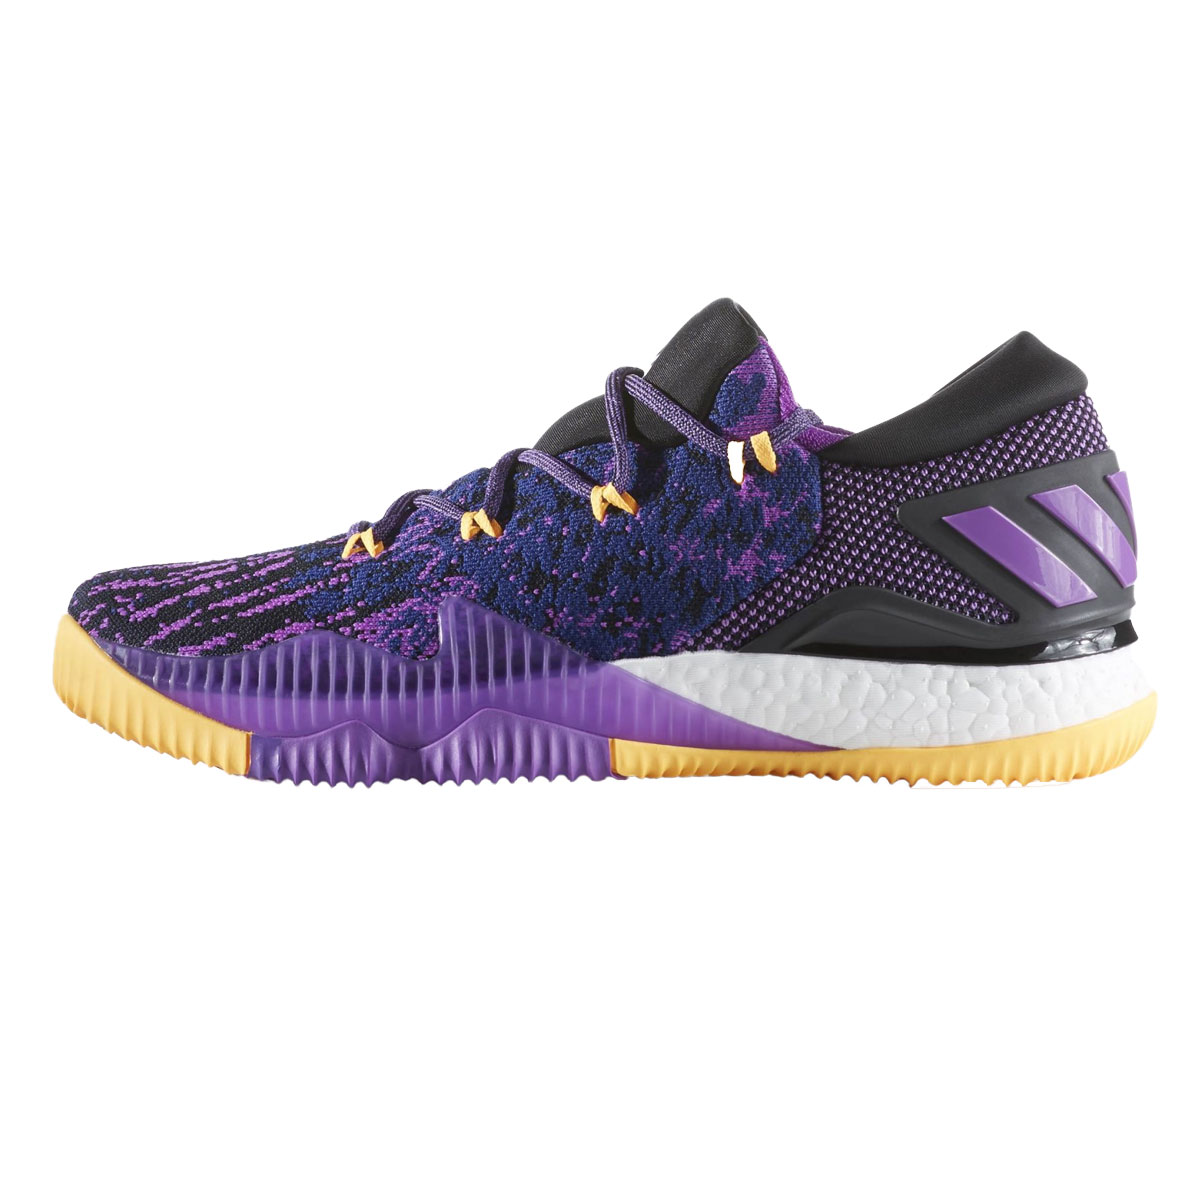 uk availability 24bc4 e6680 adidas Crazylight Boost low 2016 PK BB8175